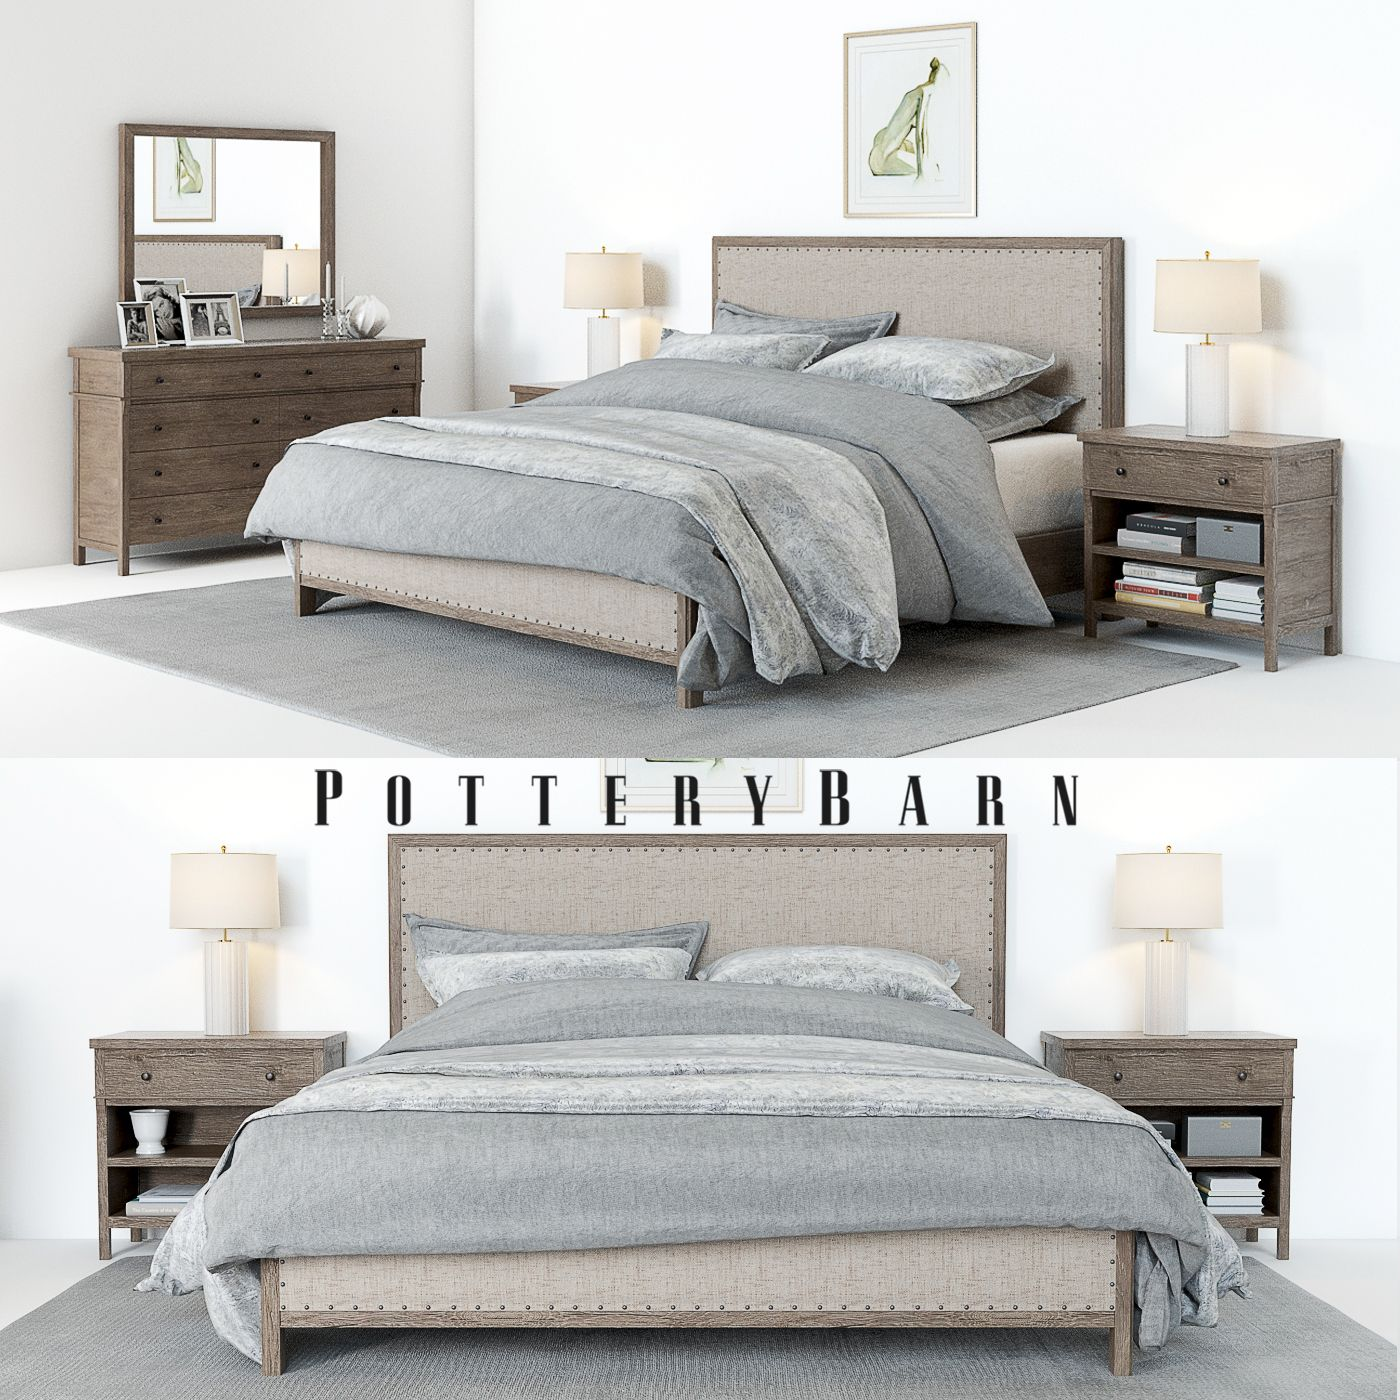 Pottery Barn / Toulouse Bedroom set & Accessoires   Master